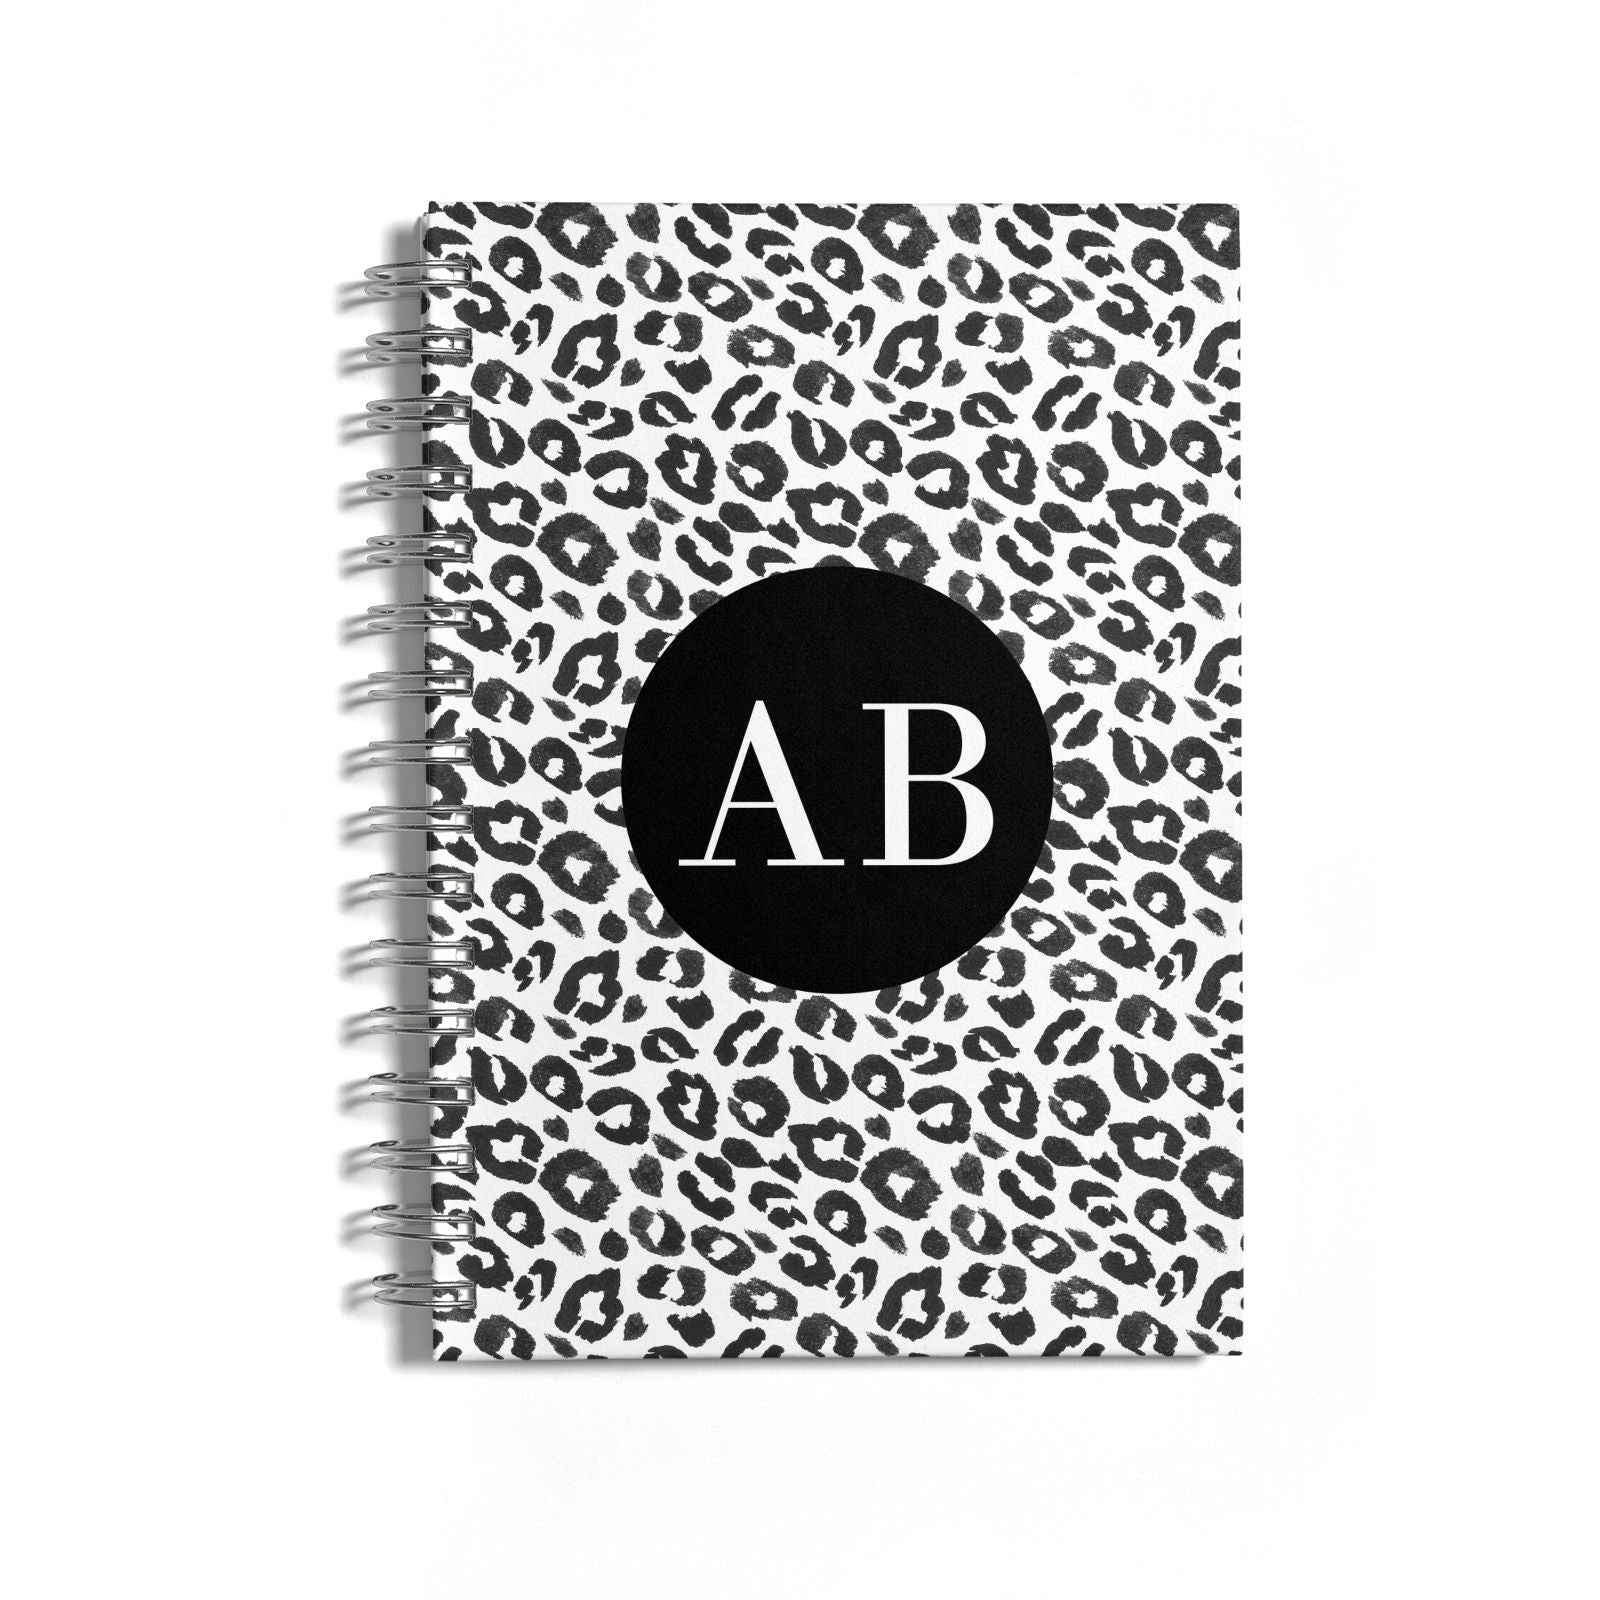 Leopard Print Black and White Notebook with Silver Coil